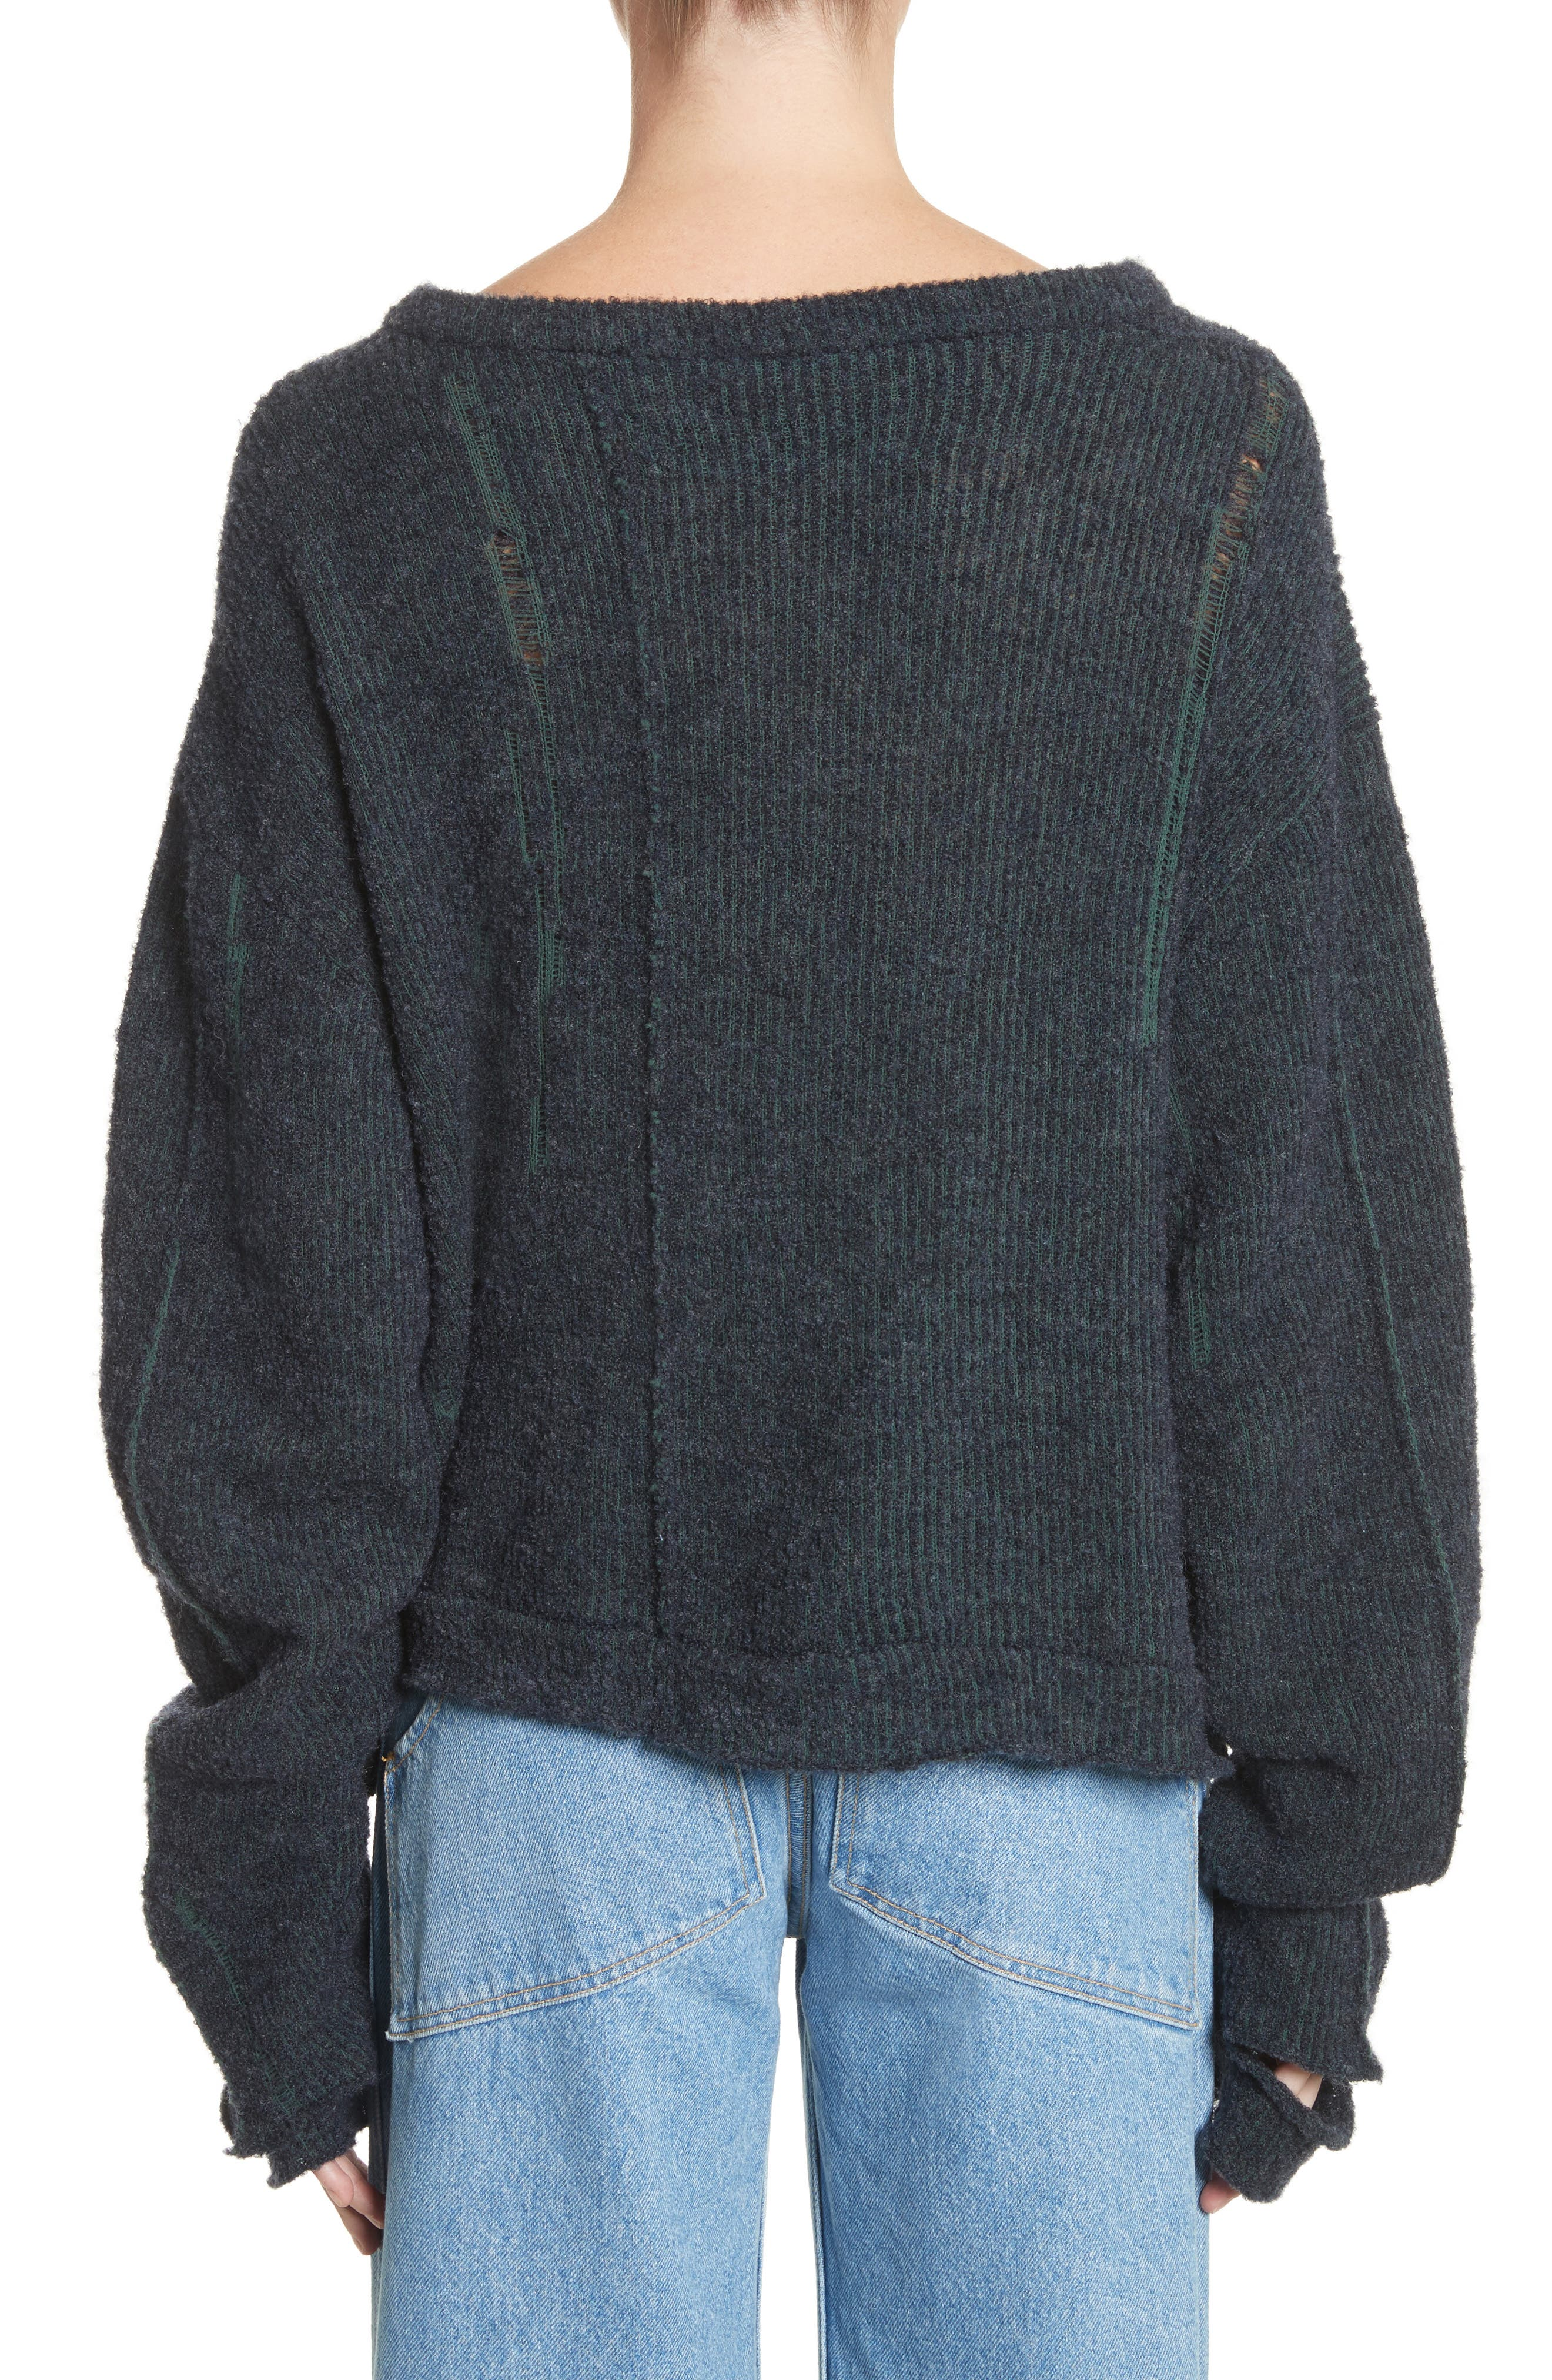 Wiggly Road Sweater,                             Alternate thumbnail 2, color,                             Navy